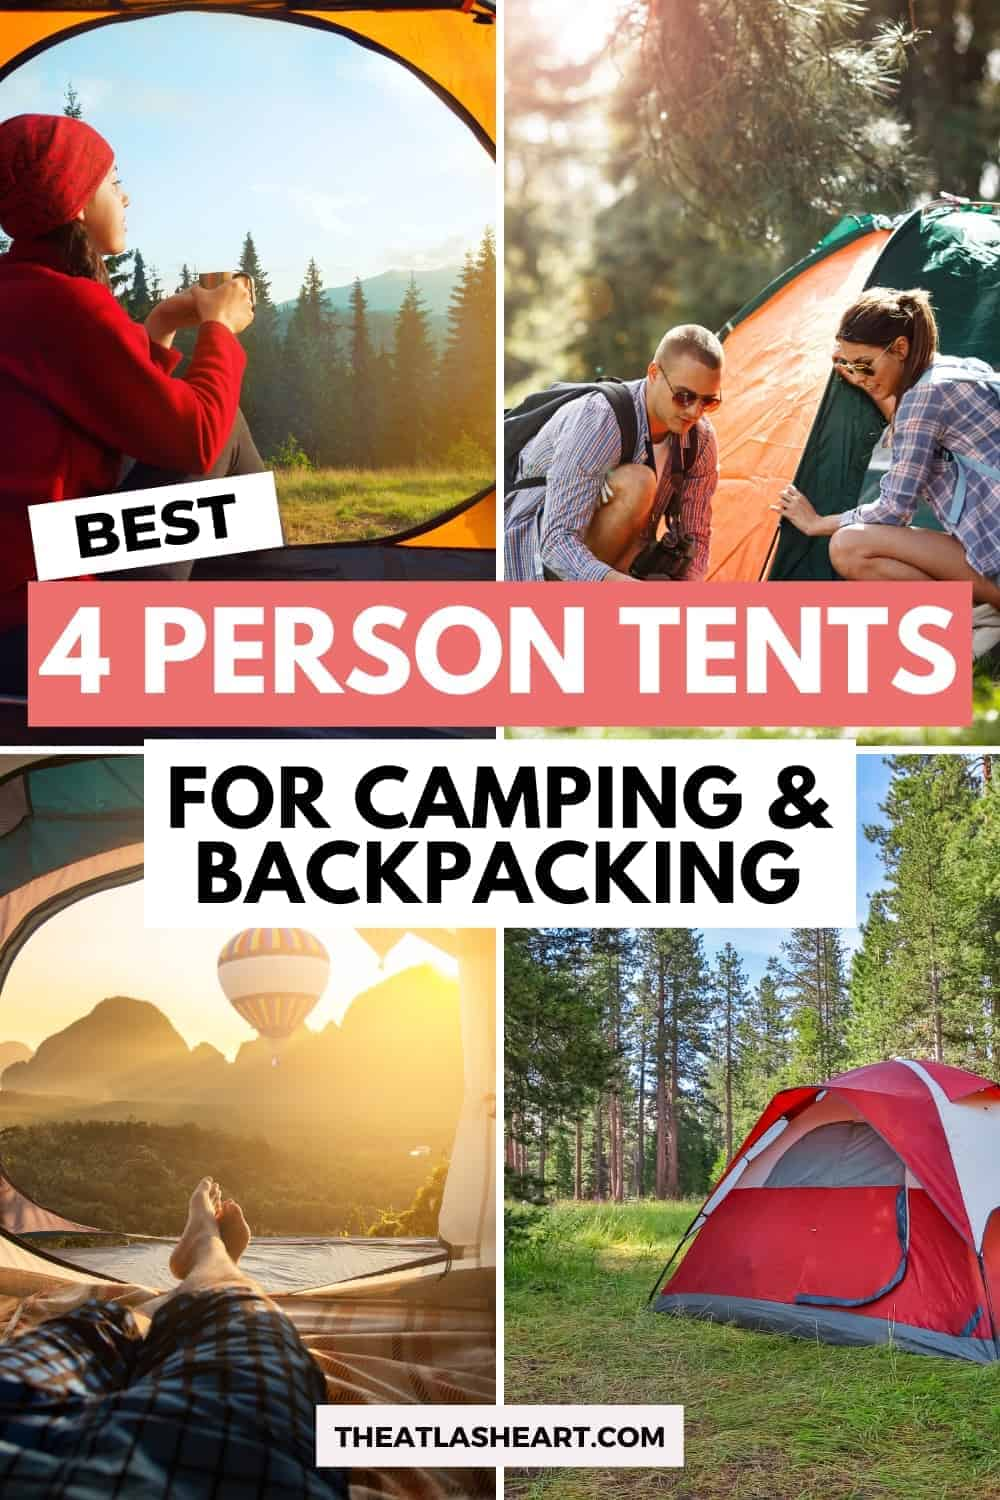 Best 4 Person Tent for Camping and Backpacking in 2021